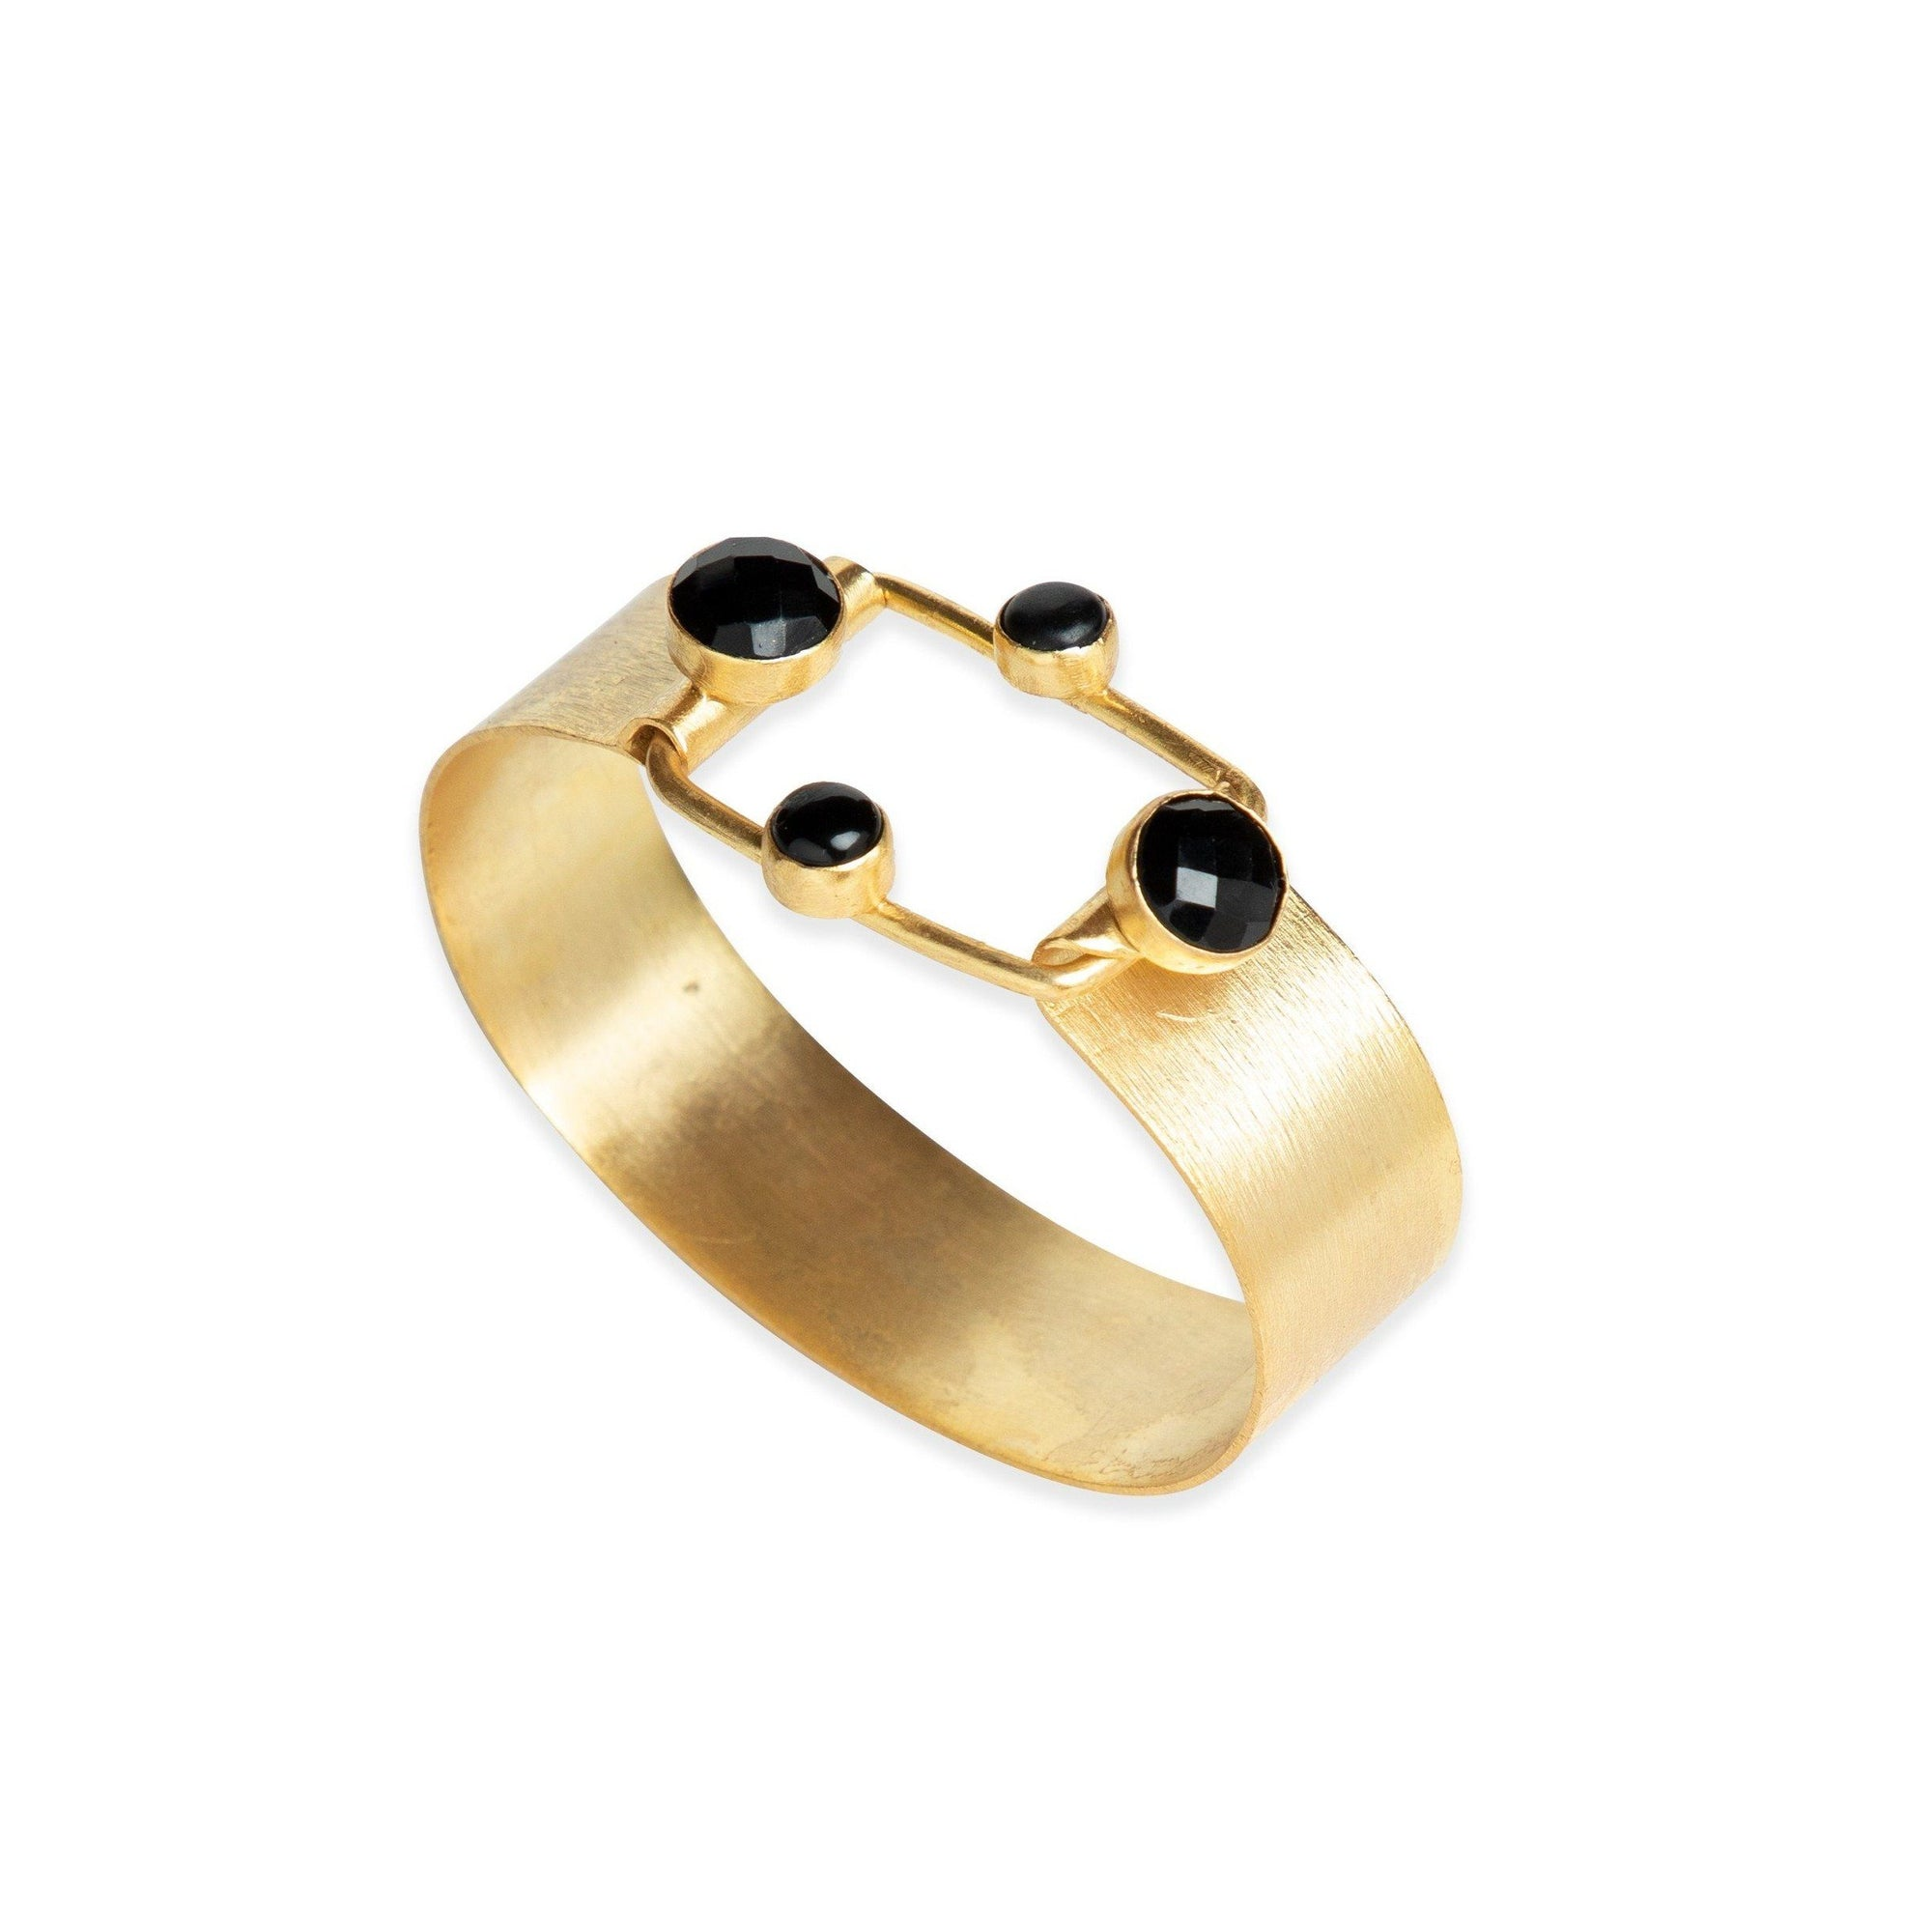 Verona one-size cuff in Black Onyx - cuff